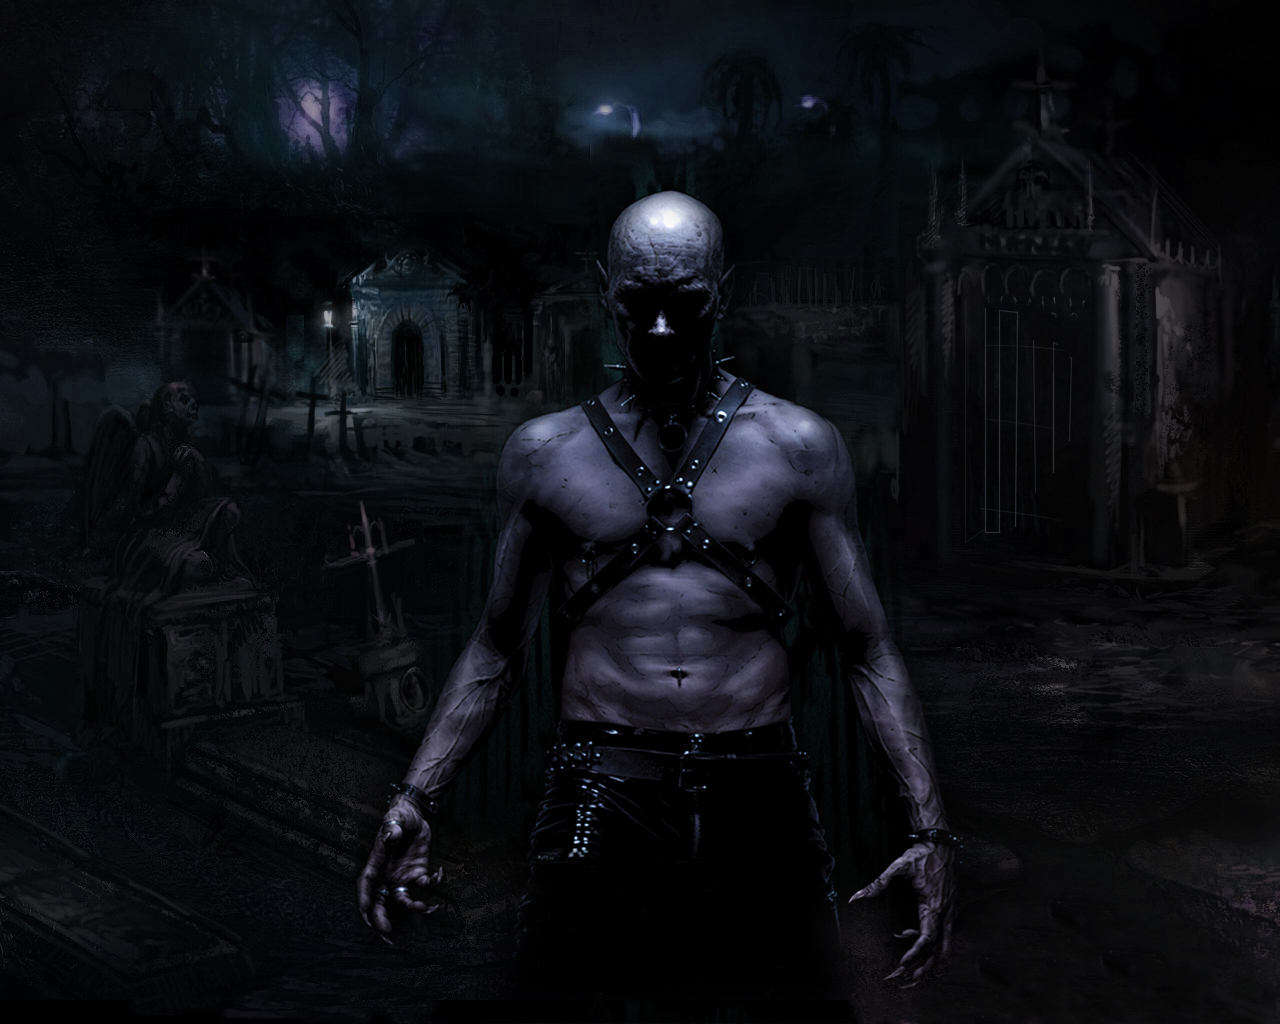 Scary wallpaper hd 2014 gothic skull horor image scary - Scary skull backgrounds ...